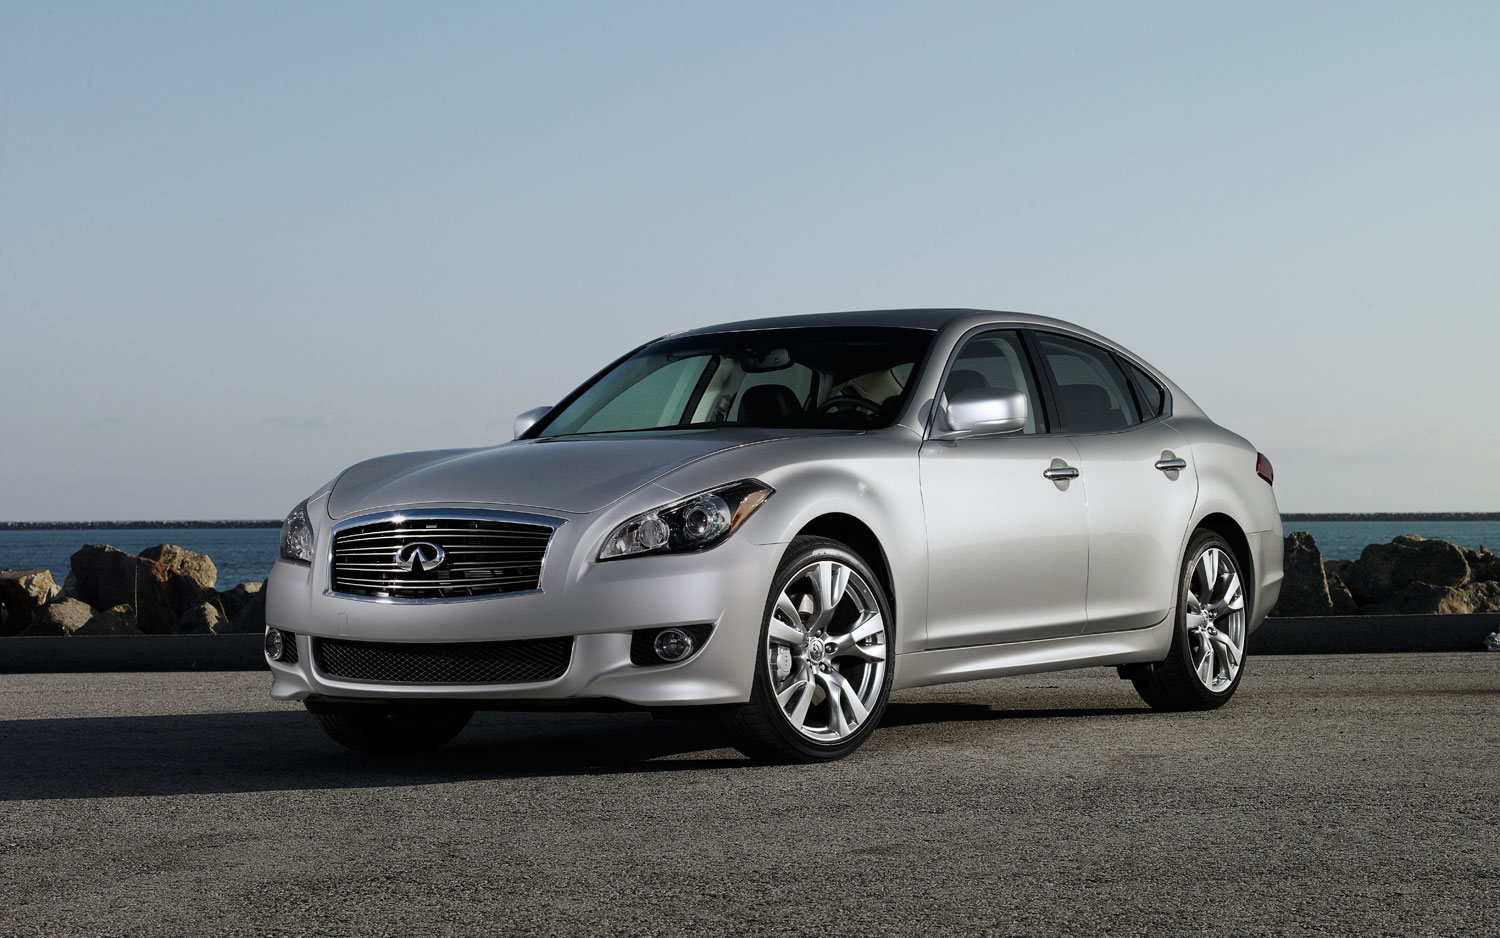 Recall Affects 79,275 Nissan Juke, Infiniti M, QX Models for Fuel System